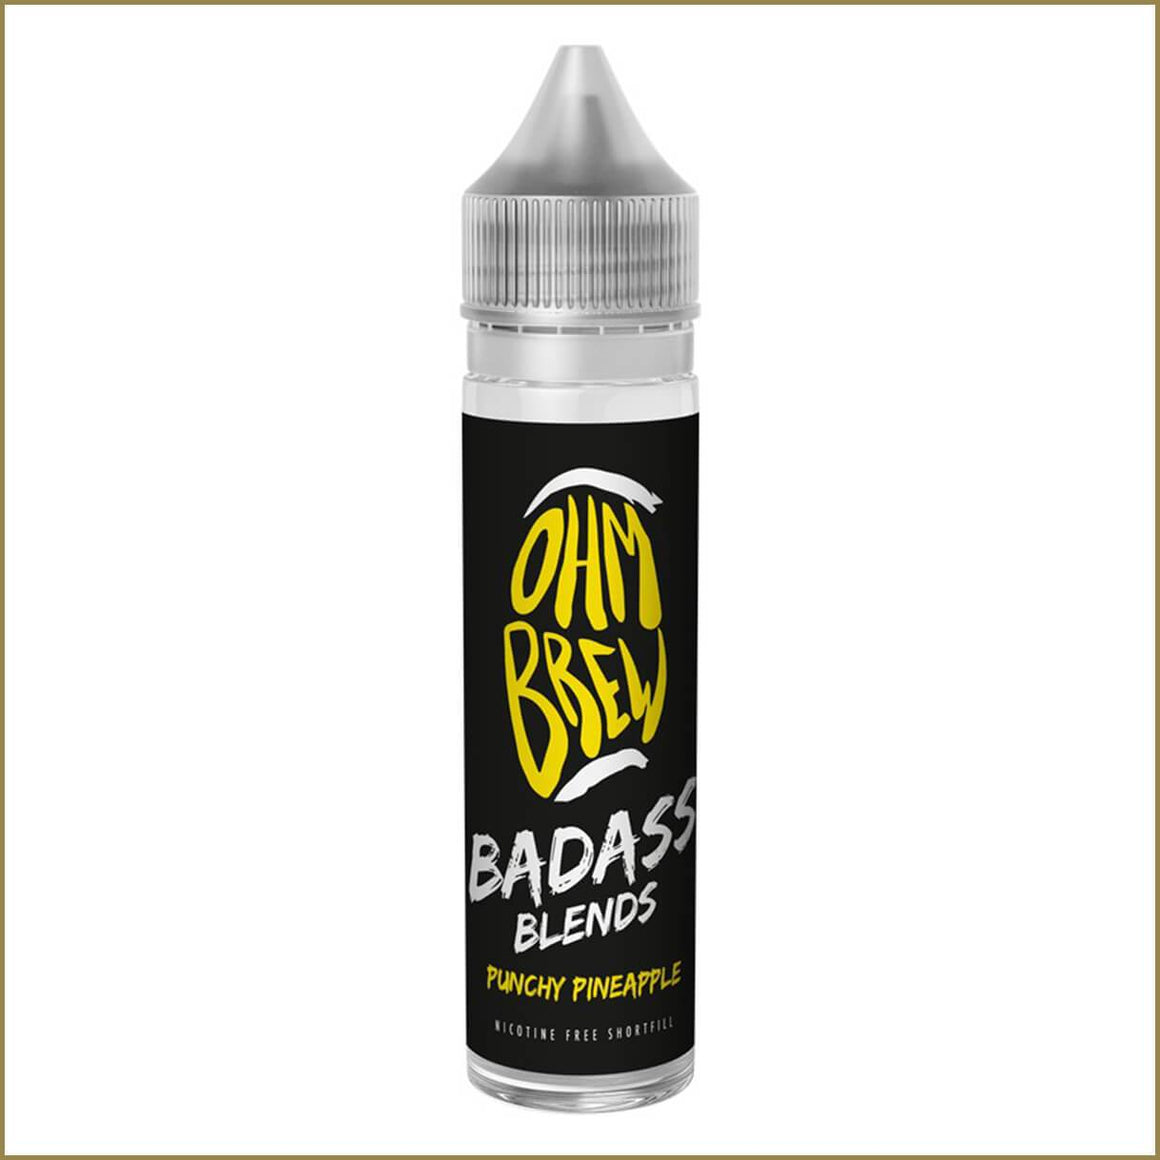 Ohm Brew Badass Blends Punchy Pineapple 50ml